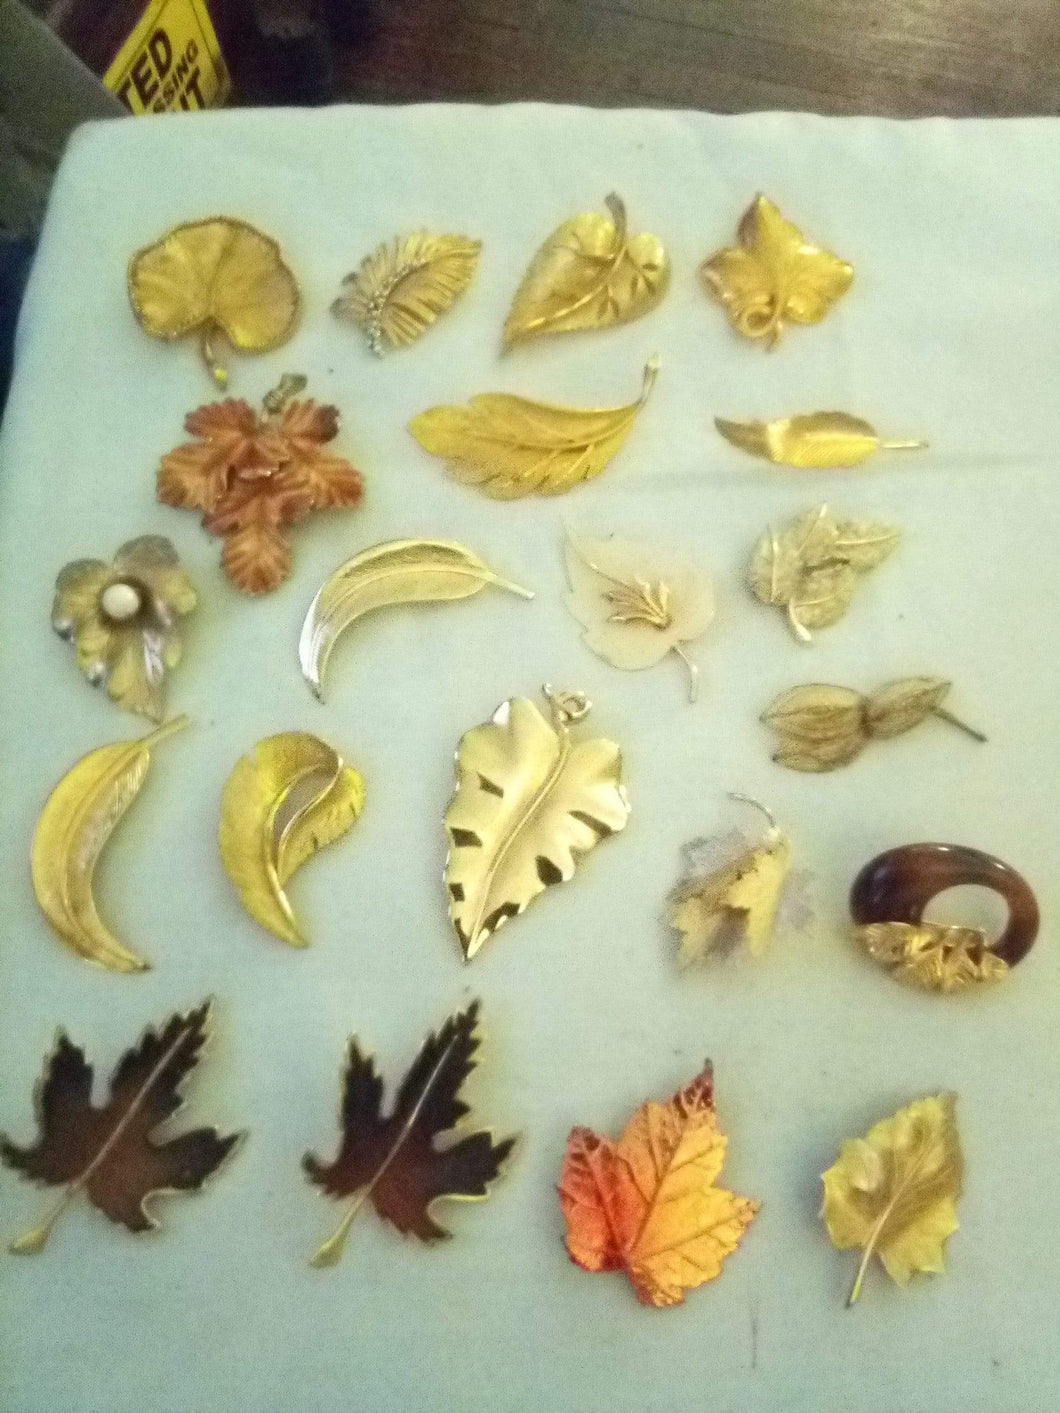 Lot of 21 assorted leaf designed broaches - B&P'sringsnthings